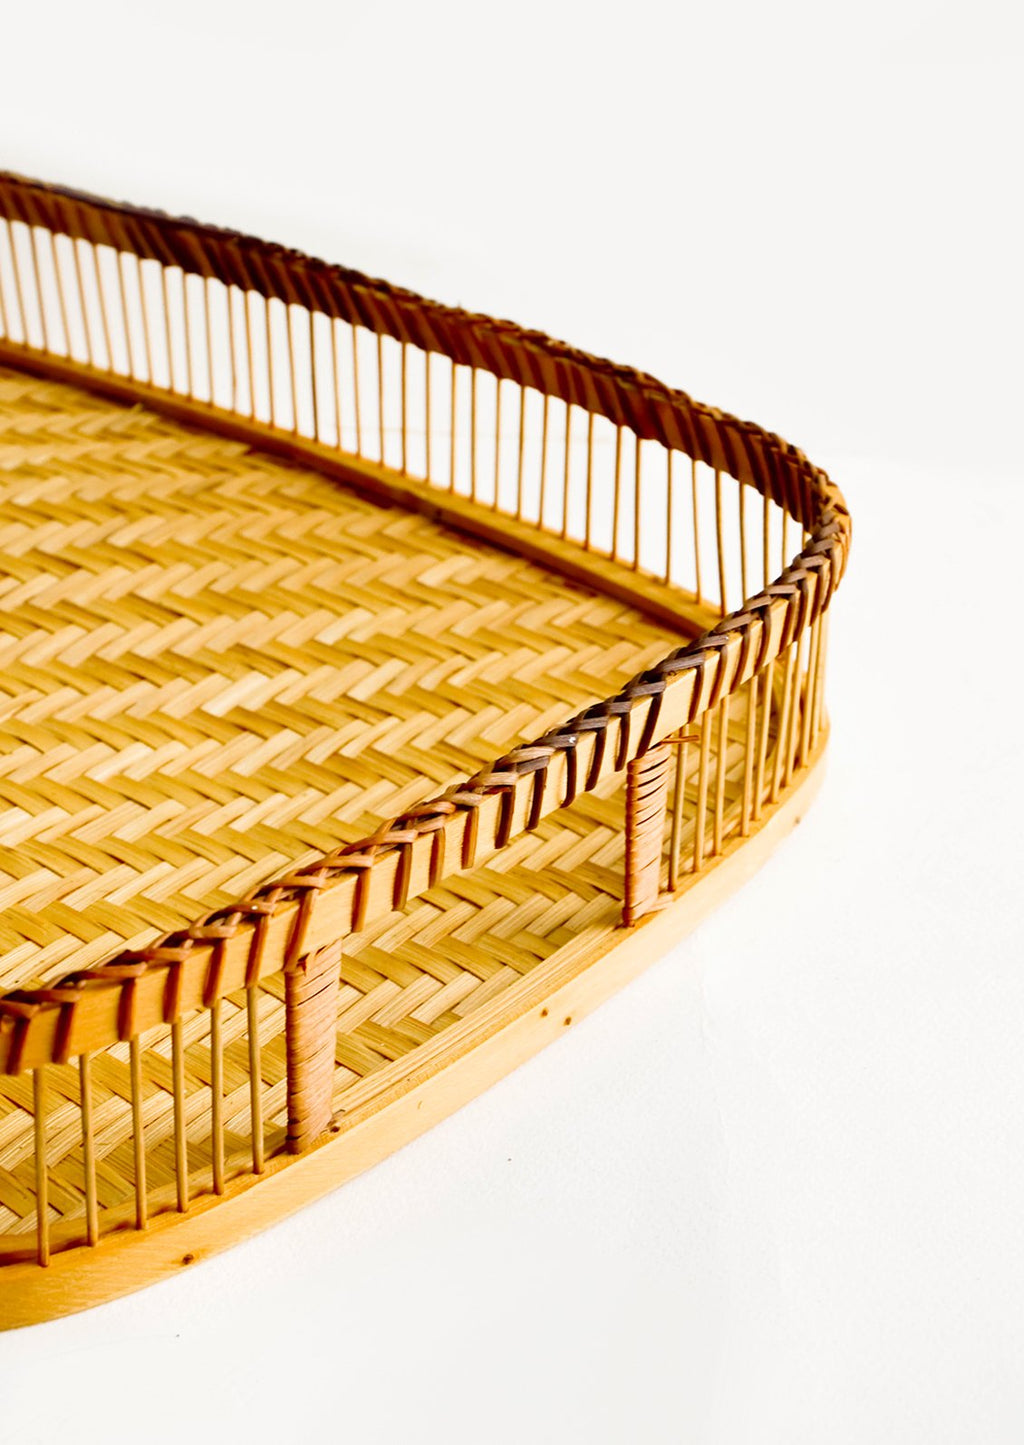 2: Woven tray with spoked rim and cutout handles at ends, made of natural bamboo